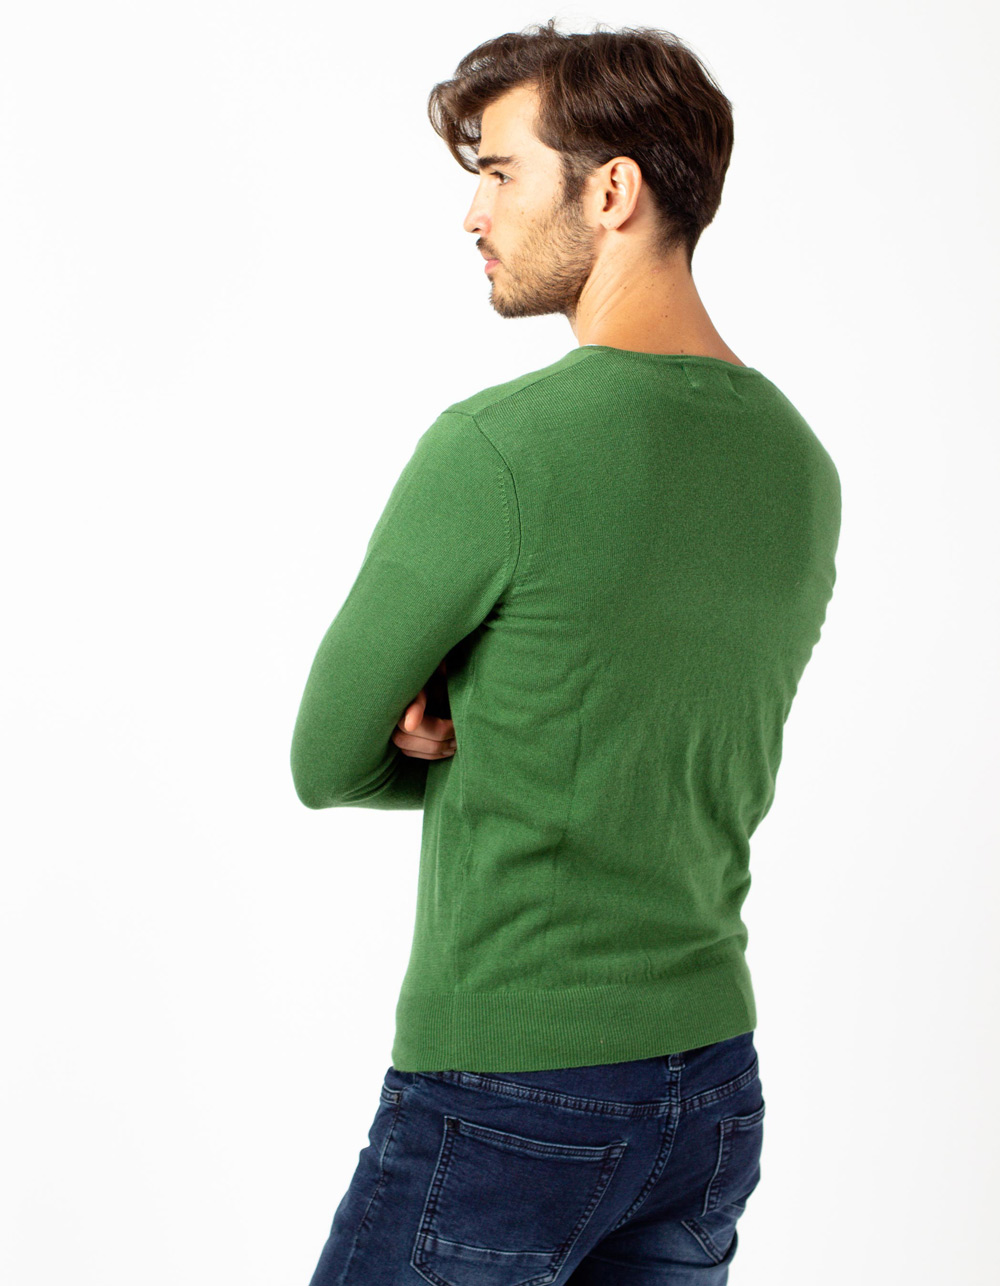 Jersey de cuello pico oliva - Backside